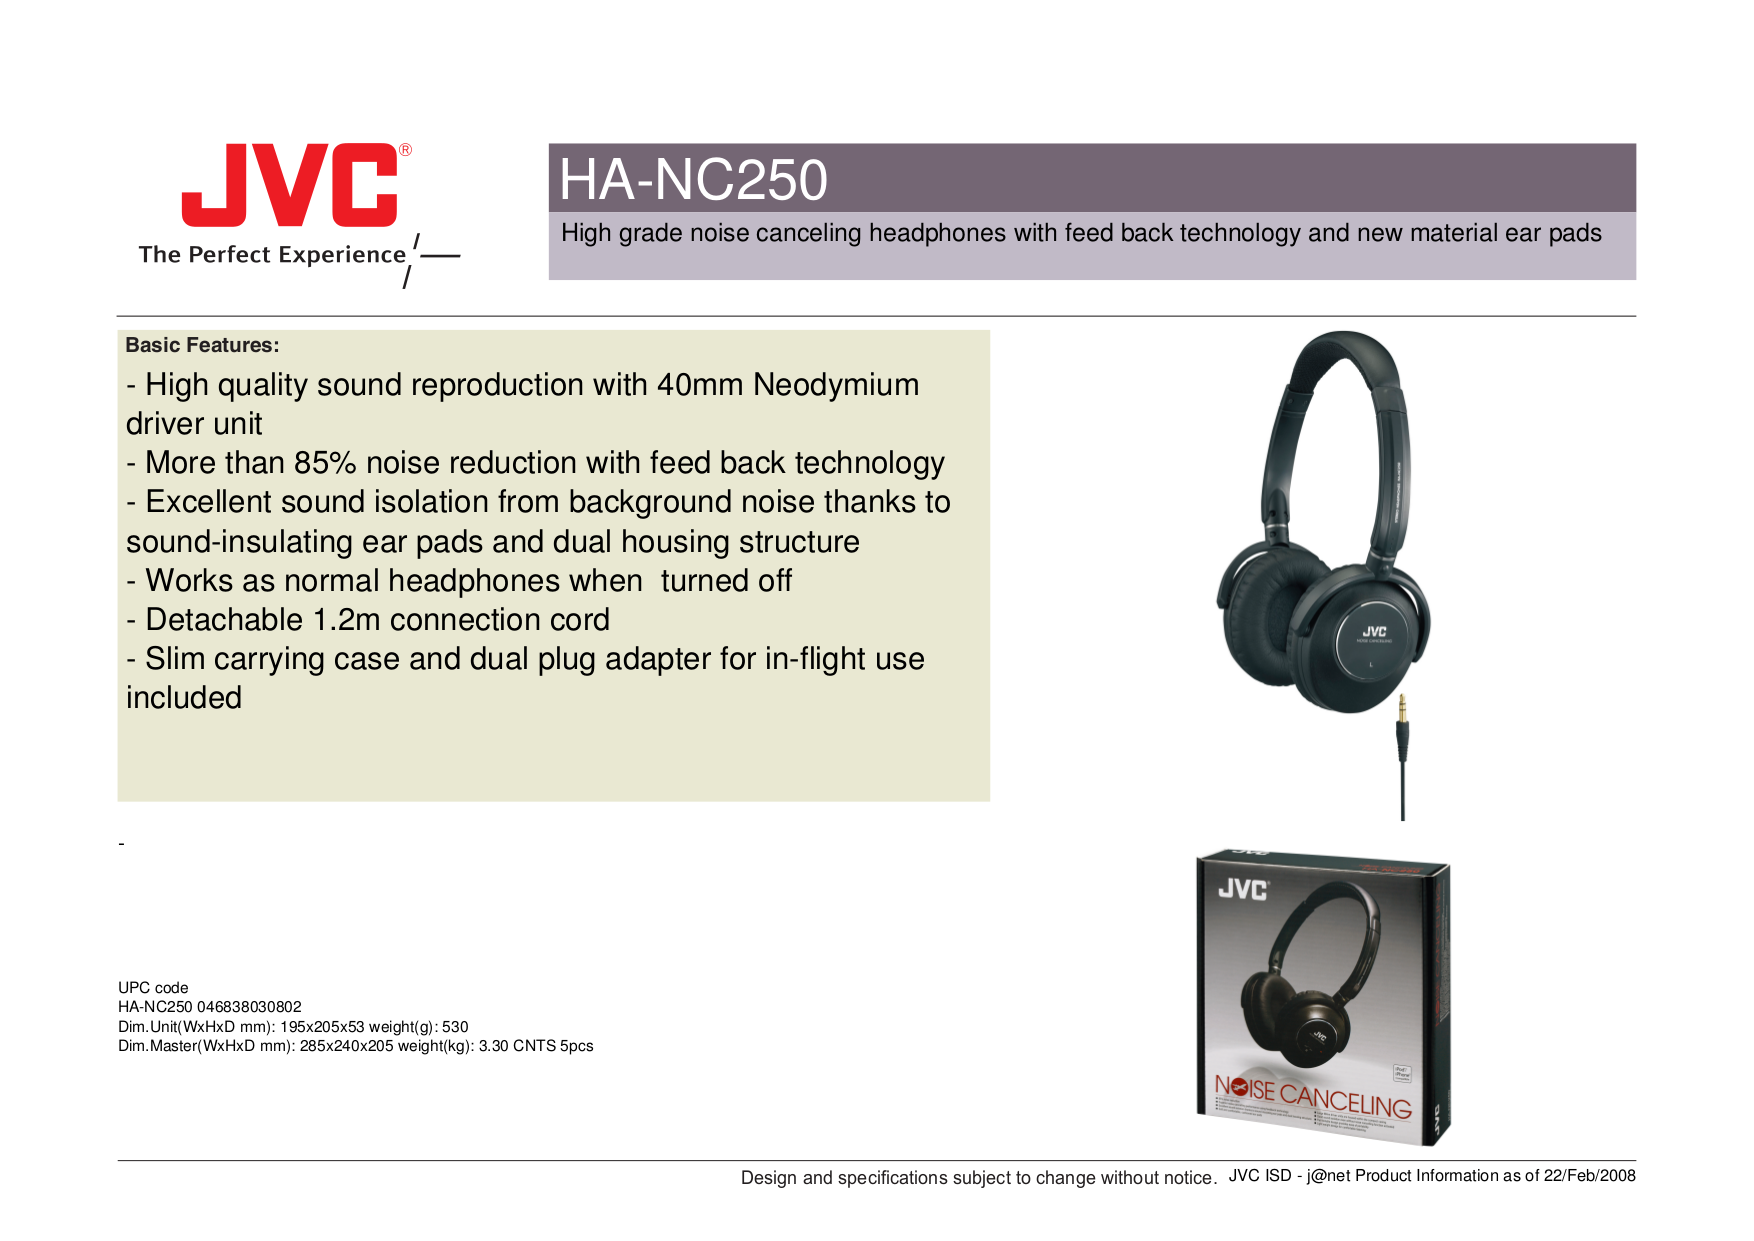 e98b51350b1 Learning add required I study JVC's 00. Specifications s Specifications  Also Ha-nc80-j, operating foam-cushioned ear pads add one last layer, HA- NC250-J ...